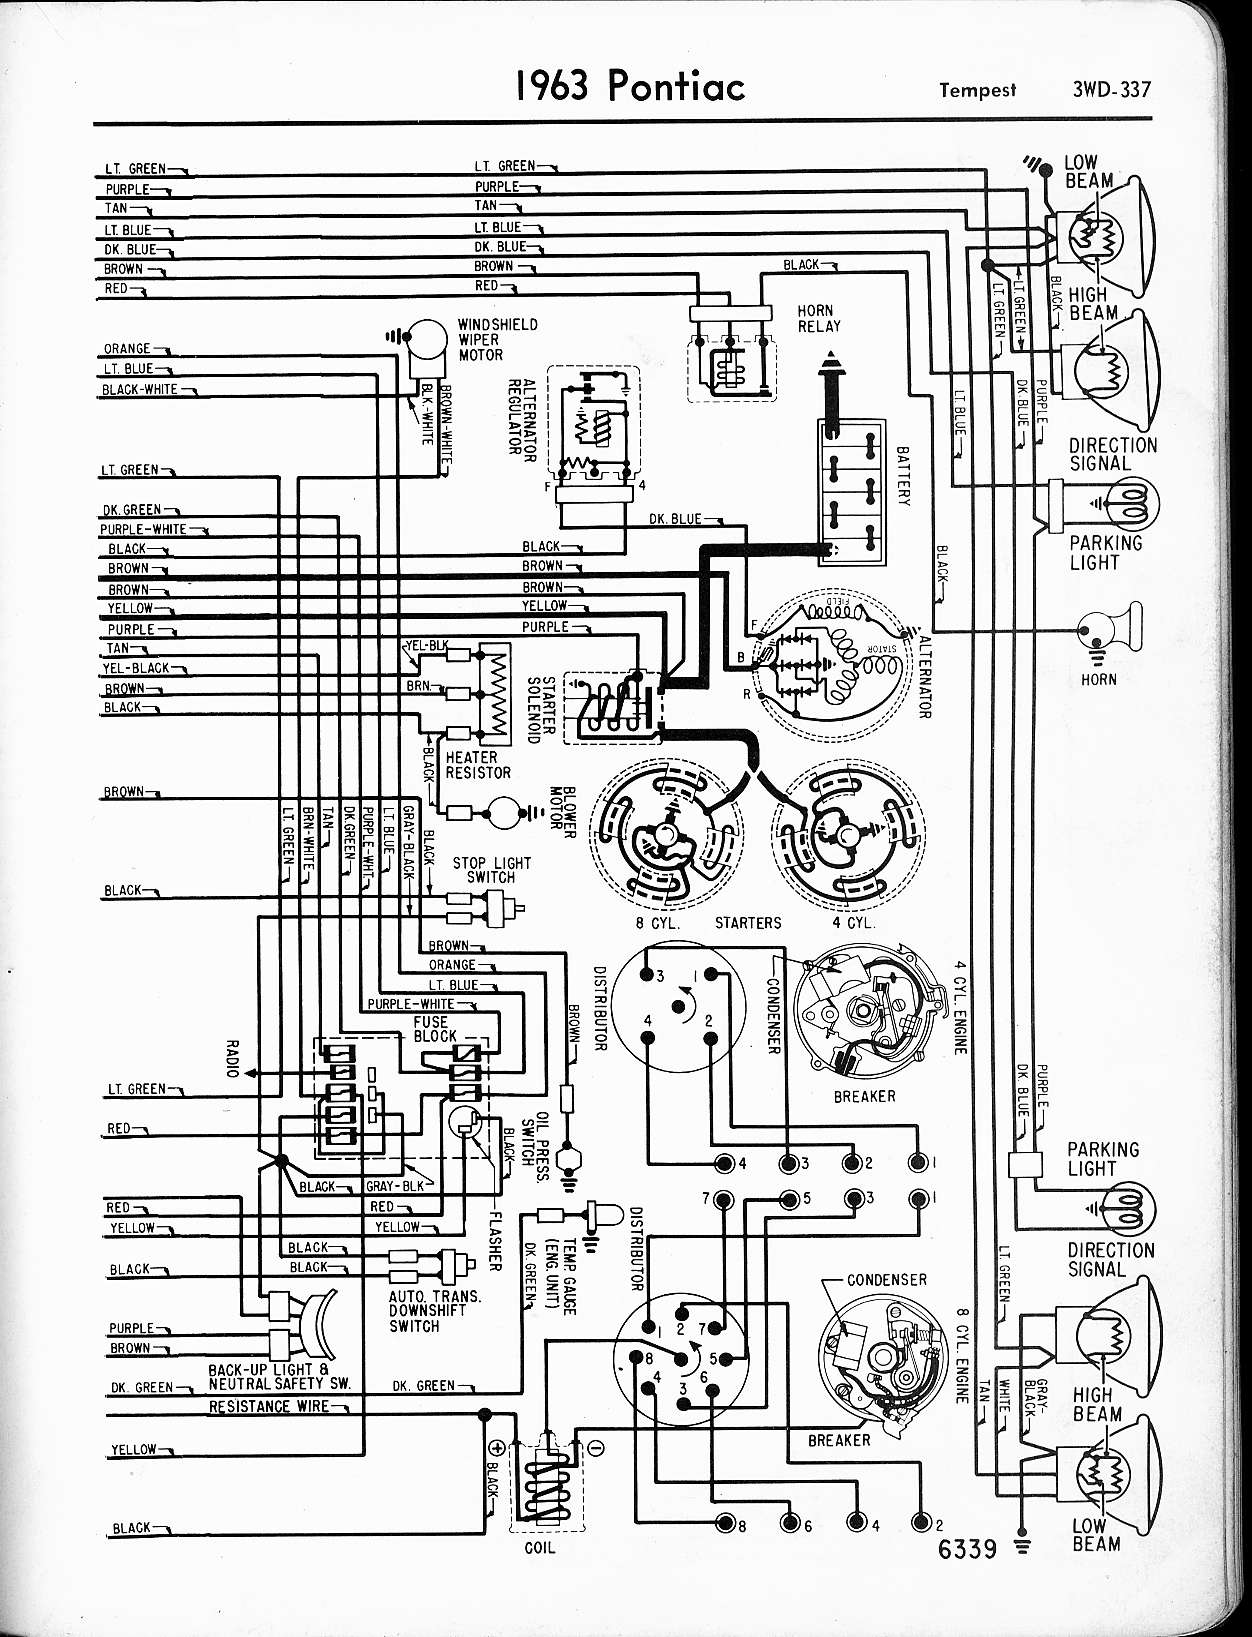 Peachy 67 Gto Tach Wiring Wiring Diagram Wiring Cloud Philuggs Outletorg